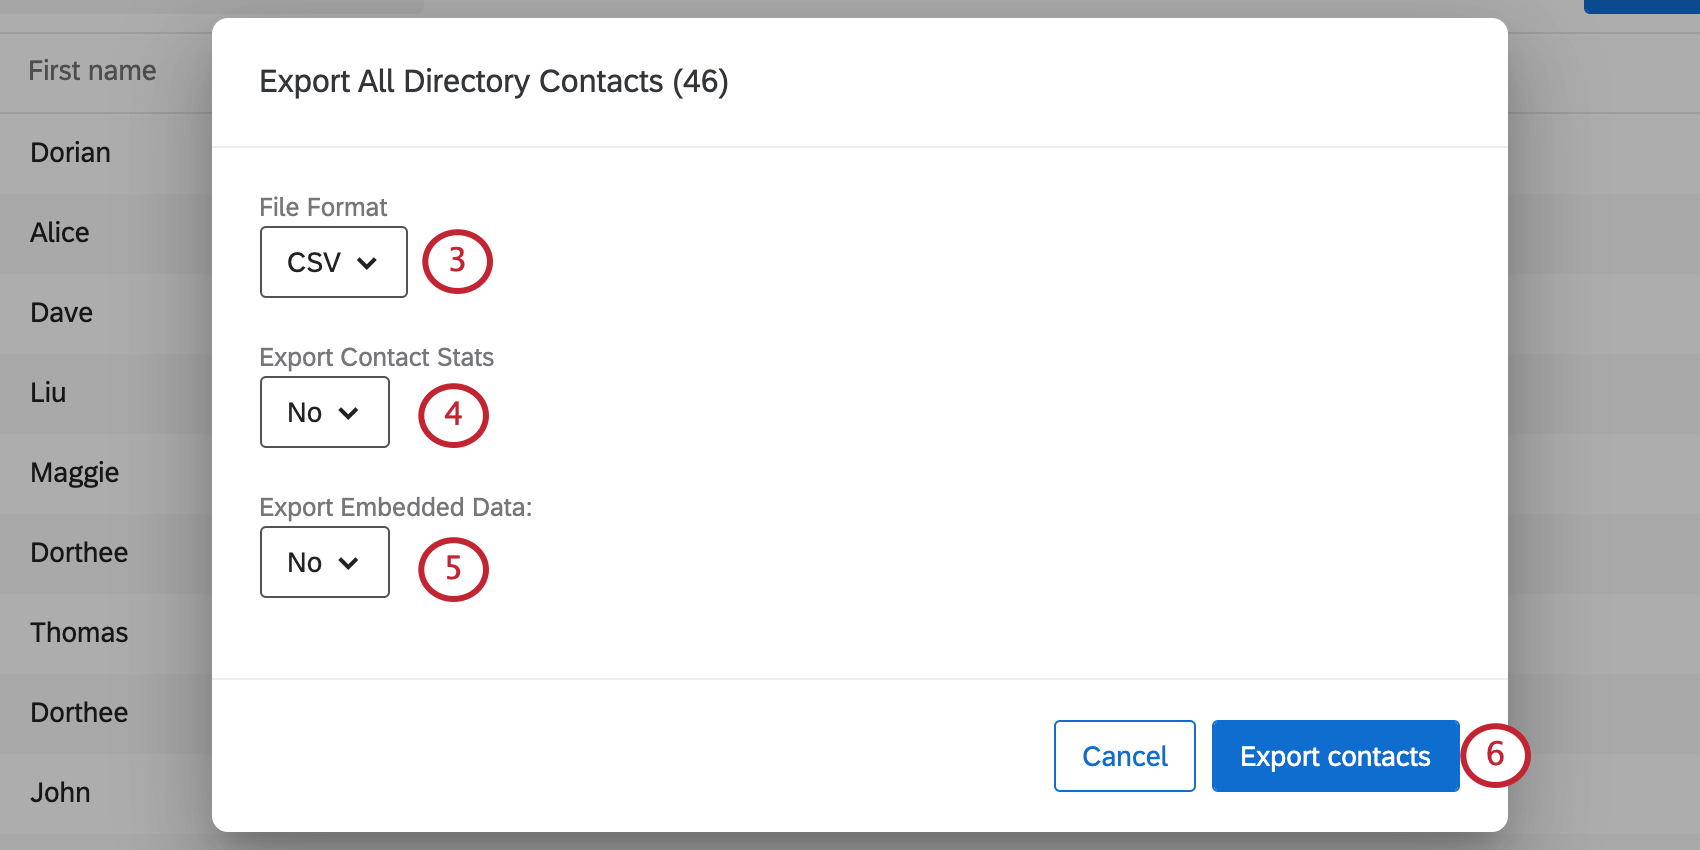 The Export contacts window